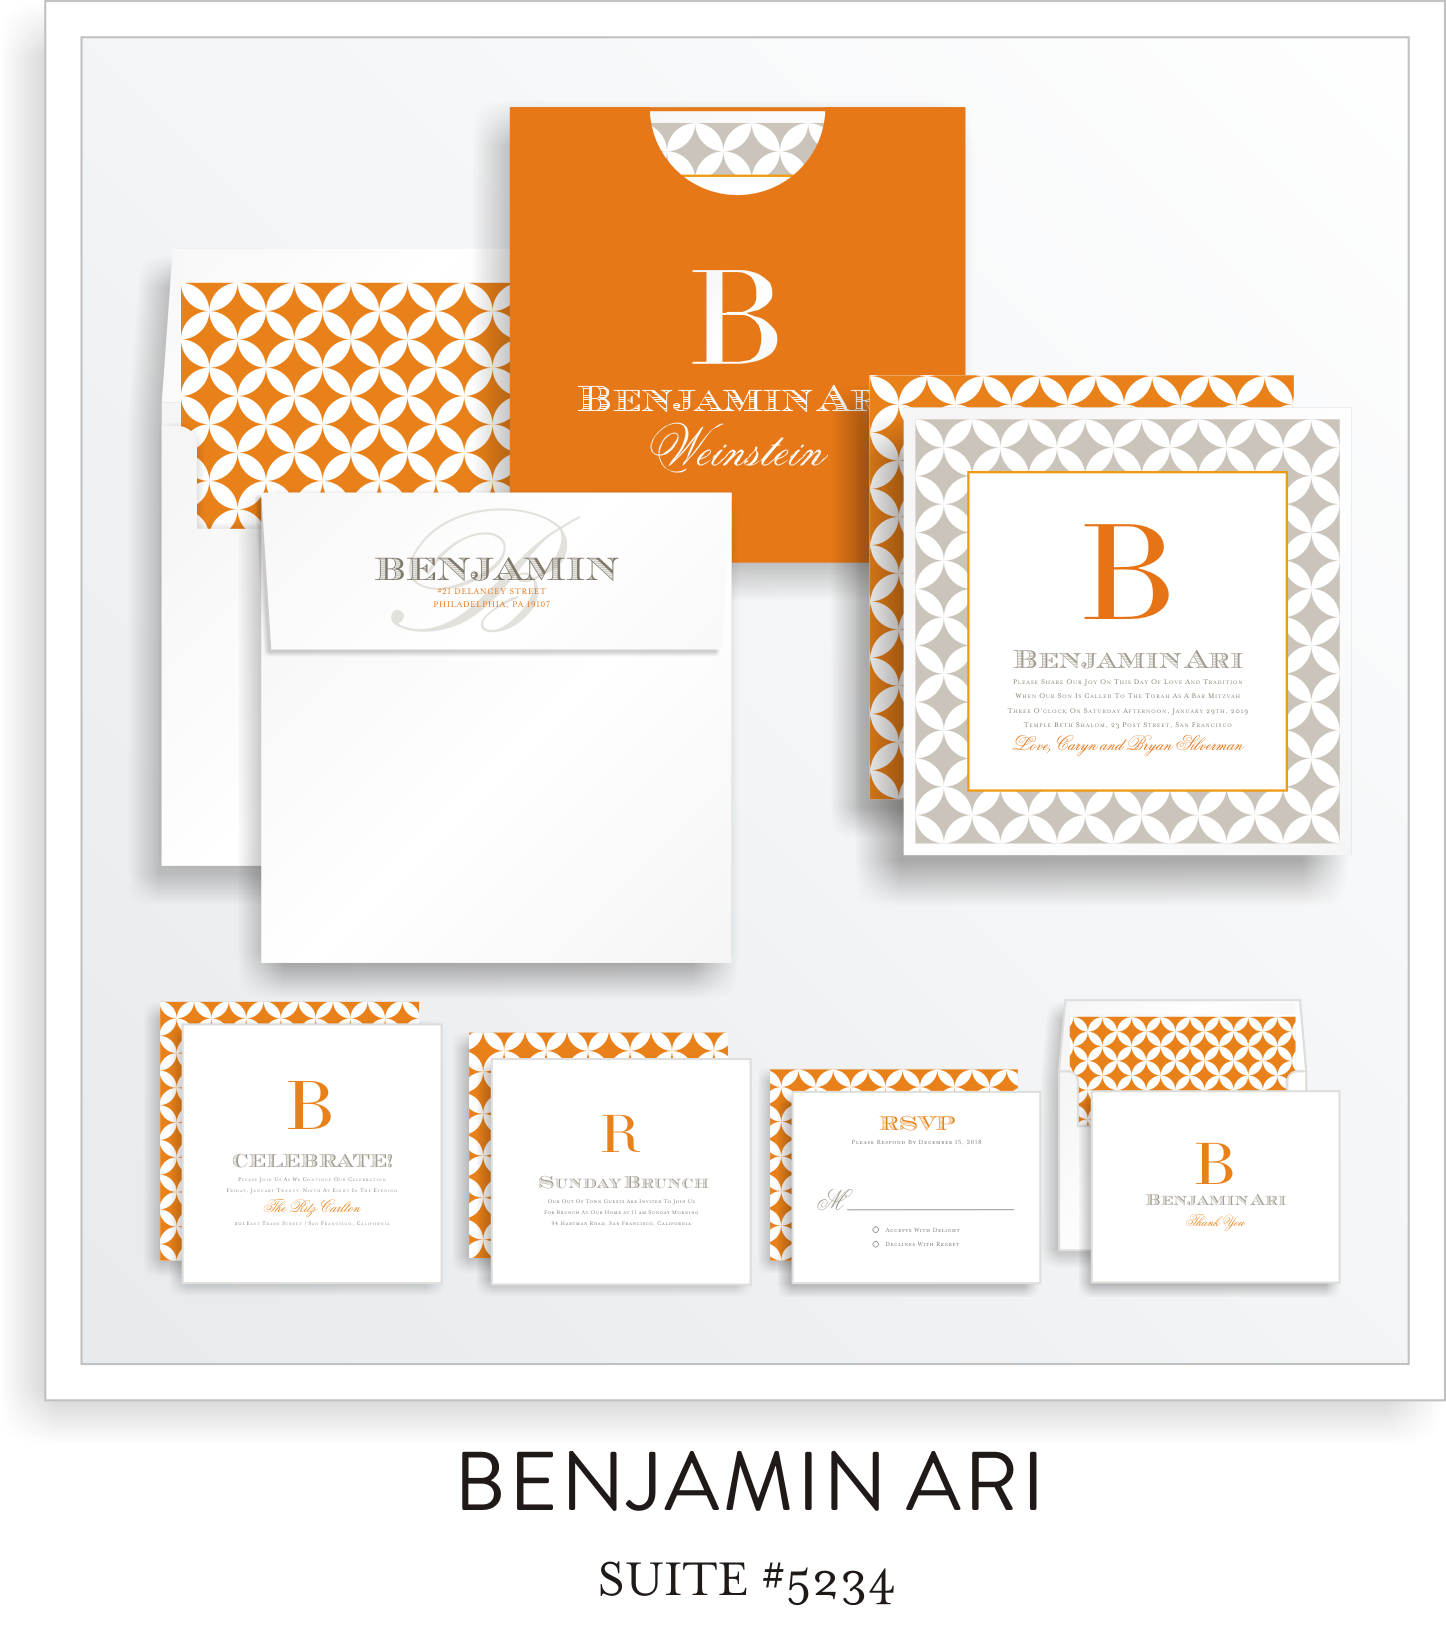 Copy of bar mitzvah invitations 5234